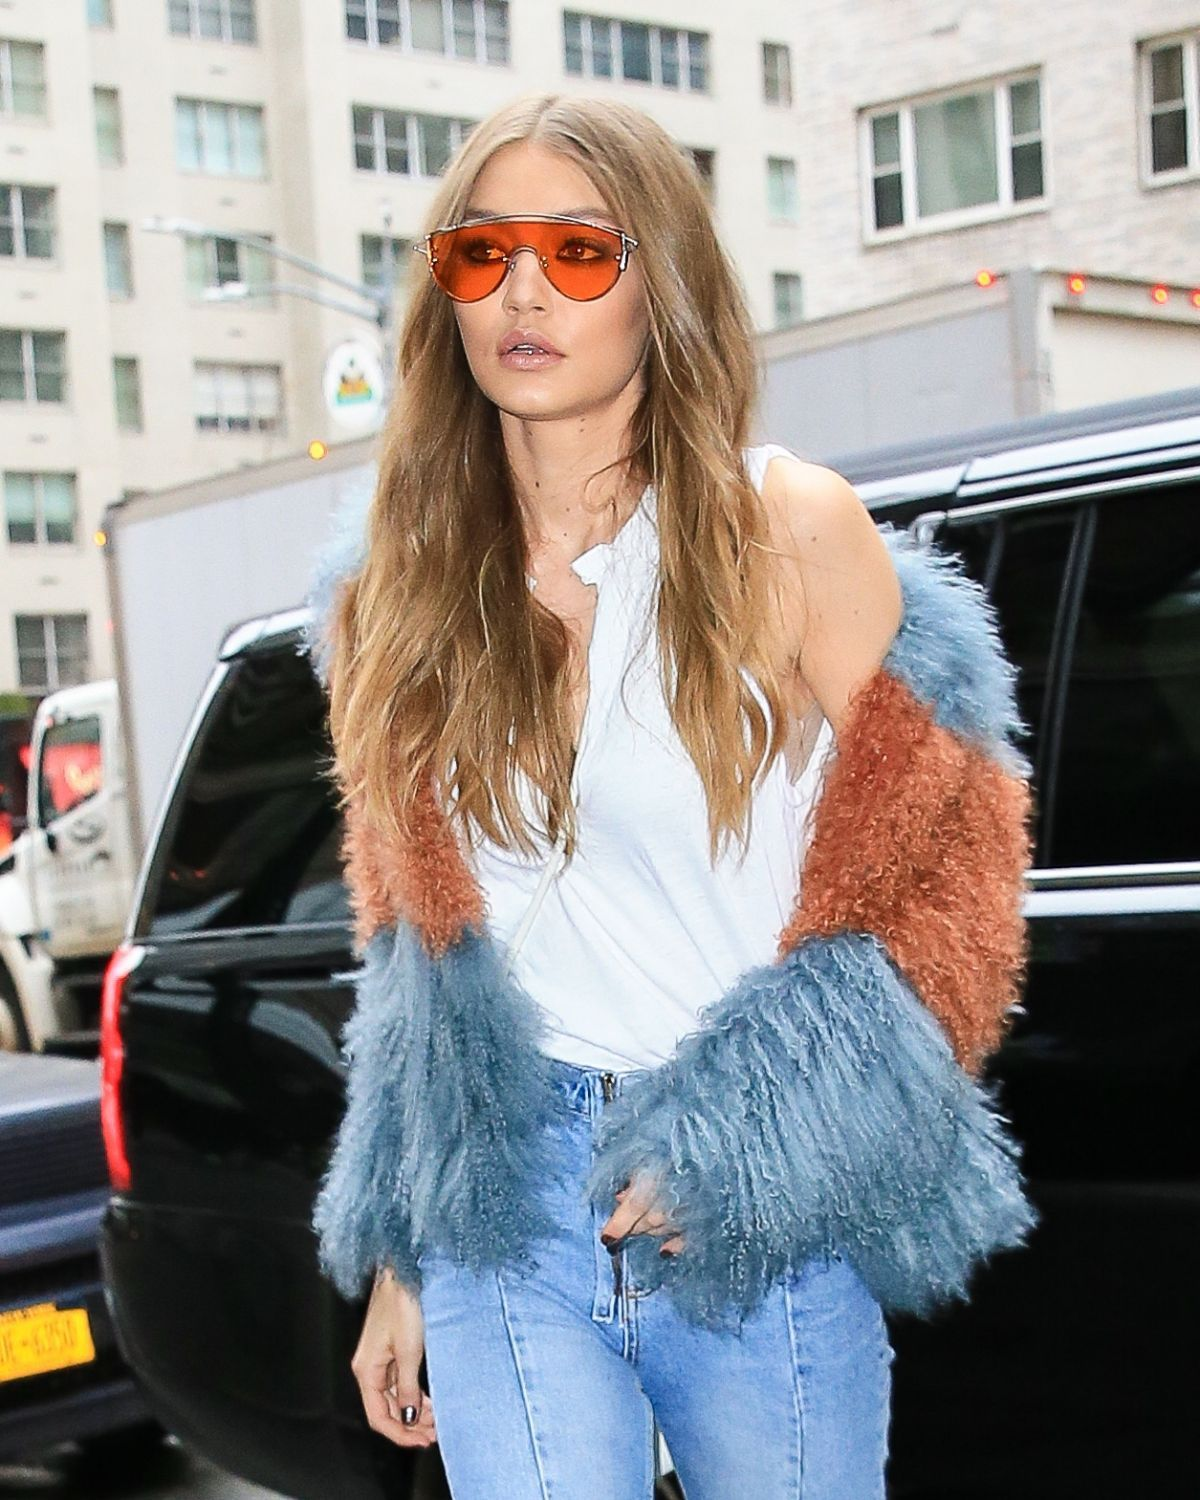 cbbfa710db Orange on Orange Sunglasses coordinated outfit Gigi Hadid Sunglasses 2017